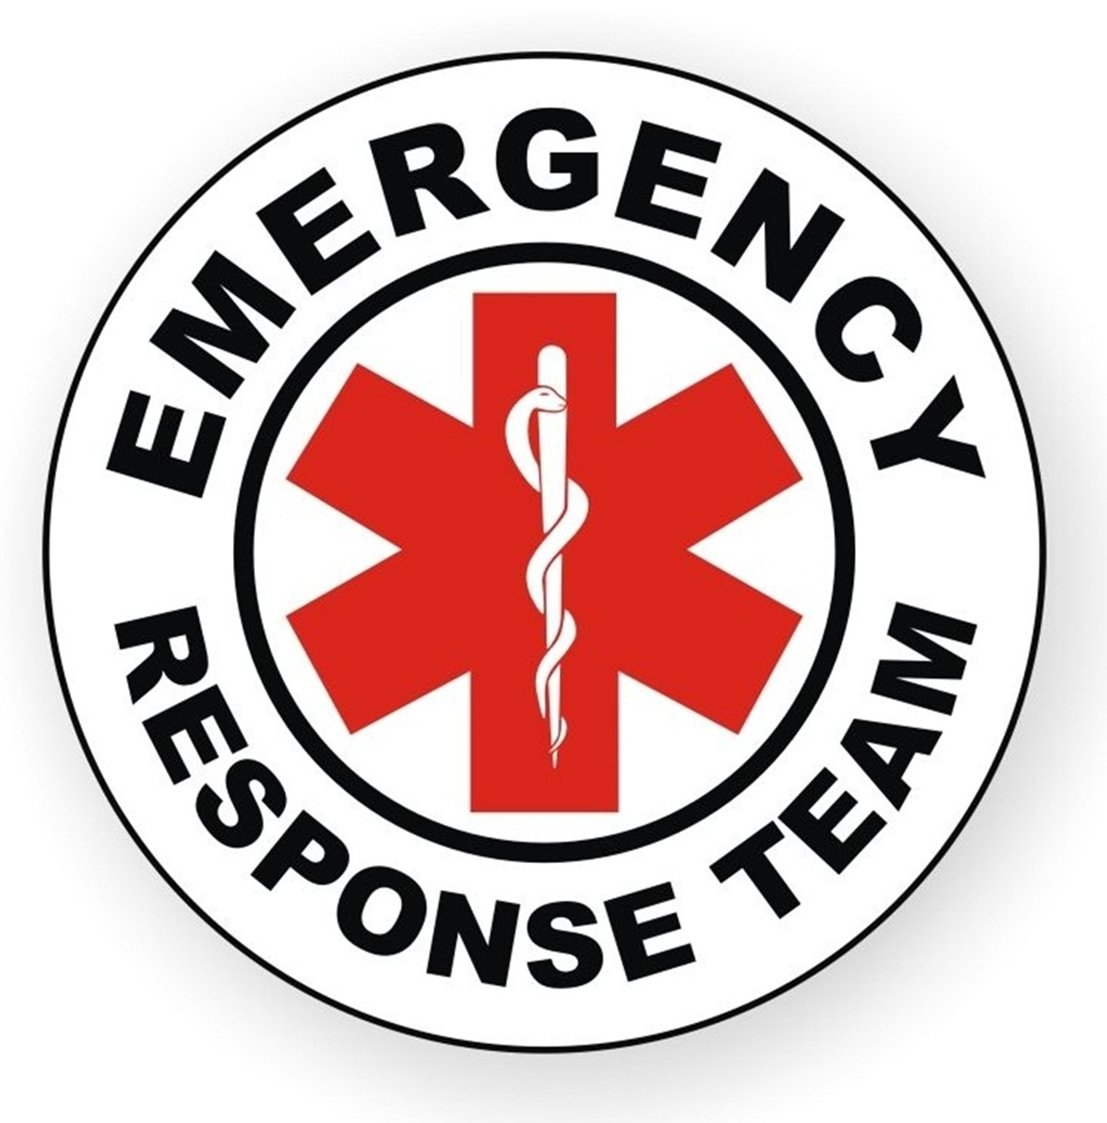 1 Pc Primo Popular Emergency Response Team Vinyl Sticker Signs Safety Stick Hard Hat Label Window Helmet Size 2'' Color White Red Black